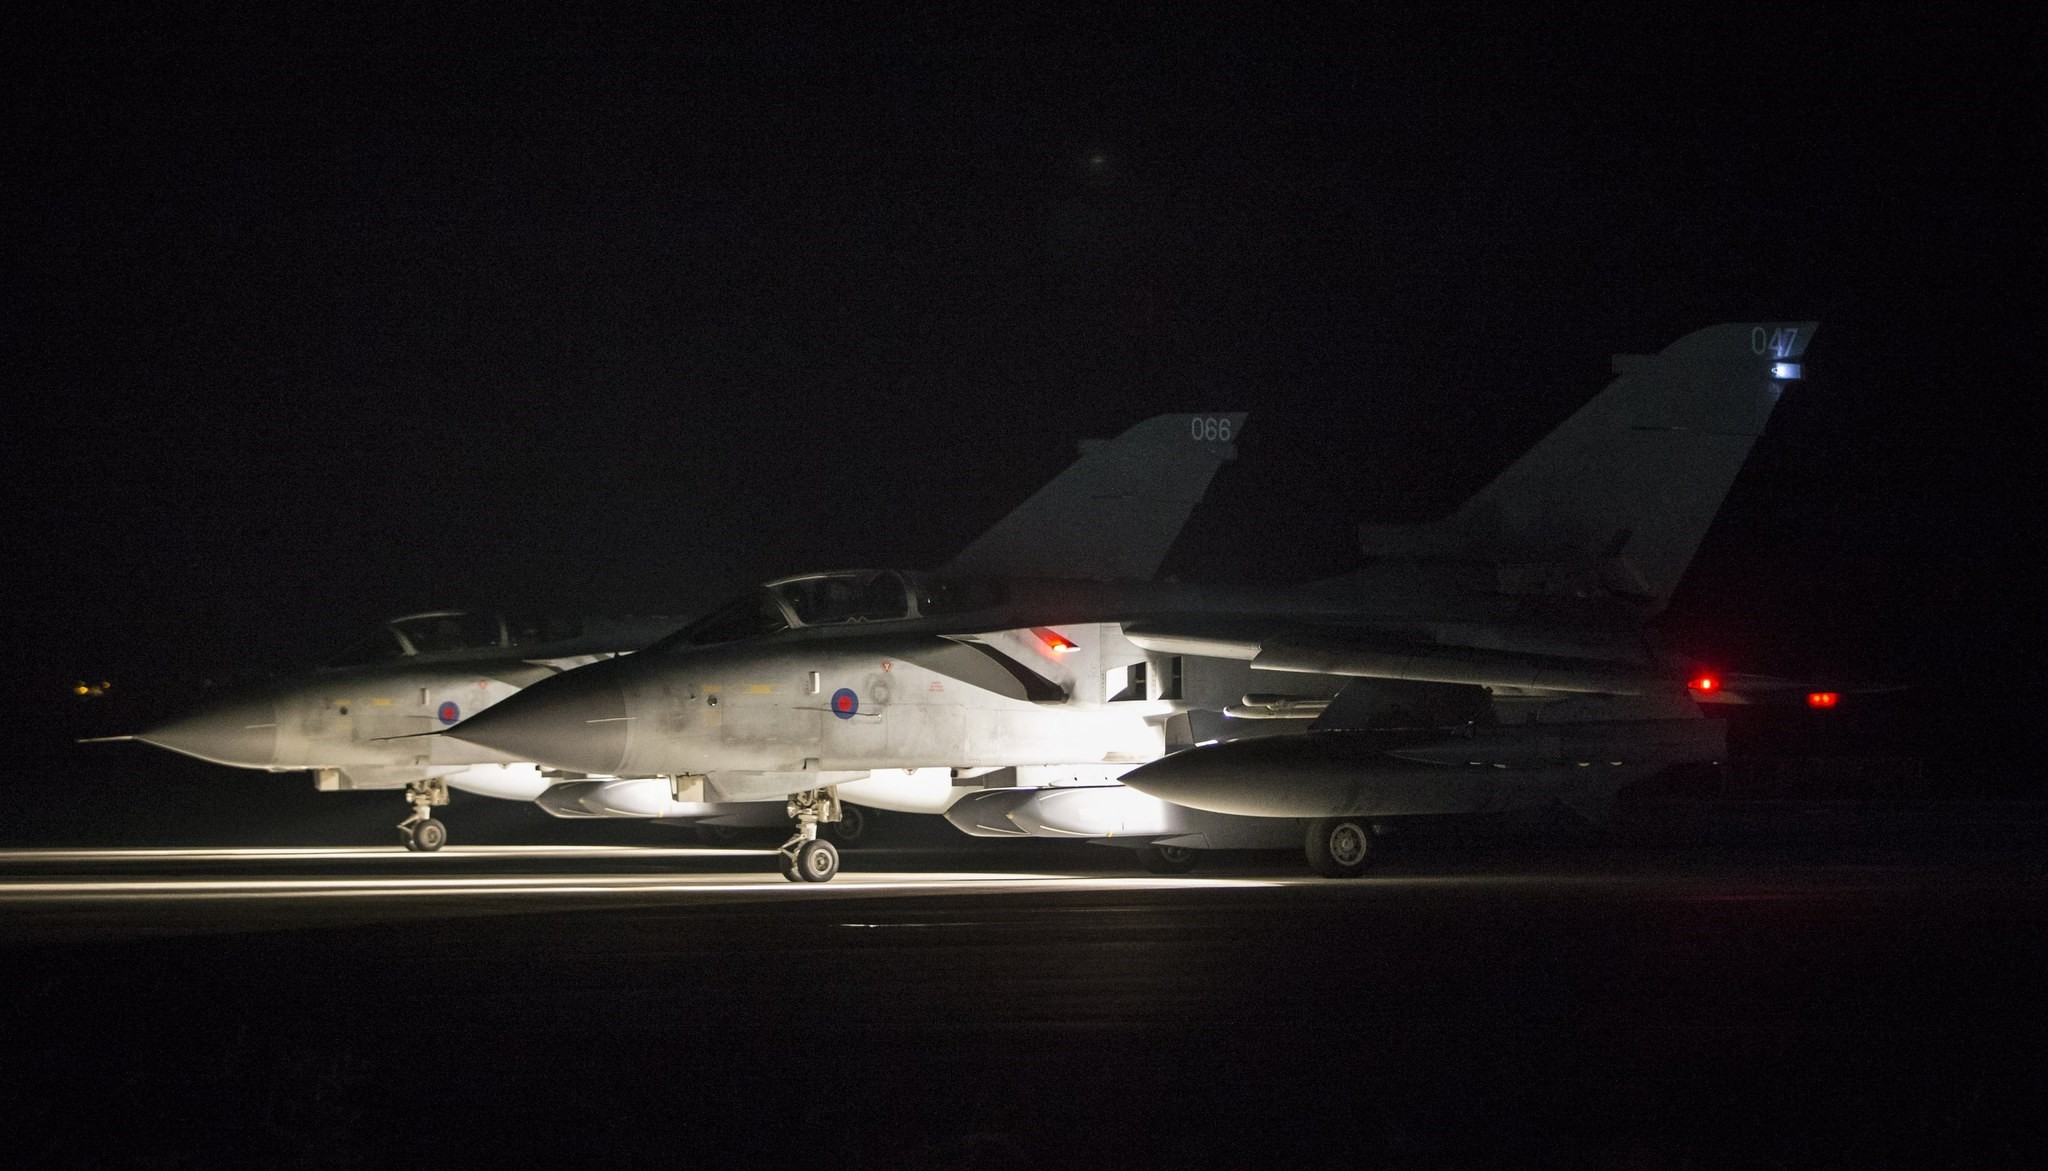 A handout photo by the British Ministry of Defence (MoD) showing two British Royal Air Force (RAF) Tornado taxing before take off at RAF Akrotiri, Cyprus, 14 April 2018 after conducting strikes in support of Operations over the Middle East.